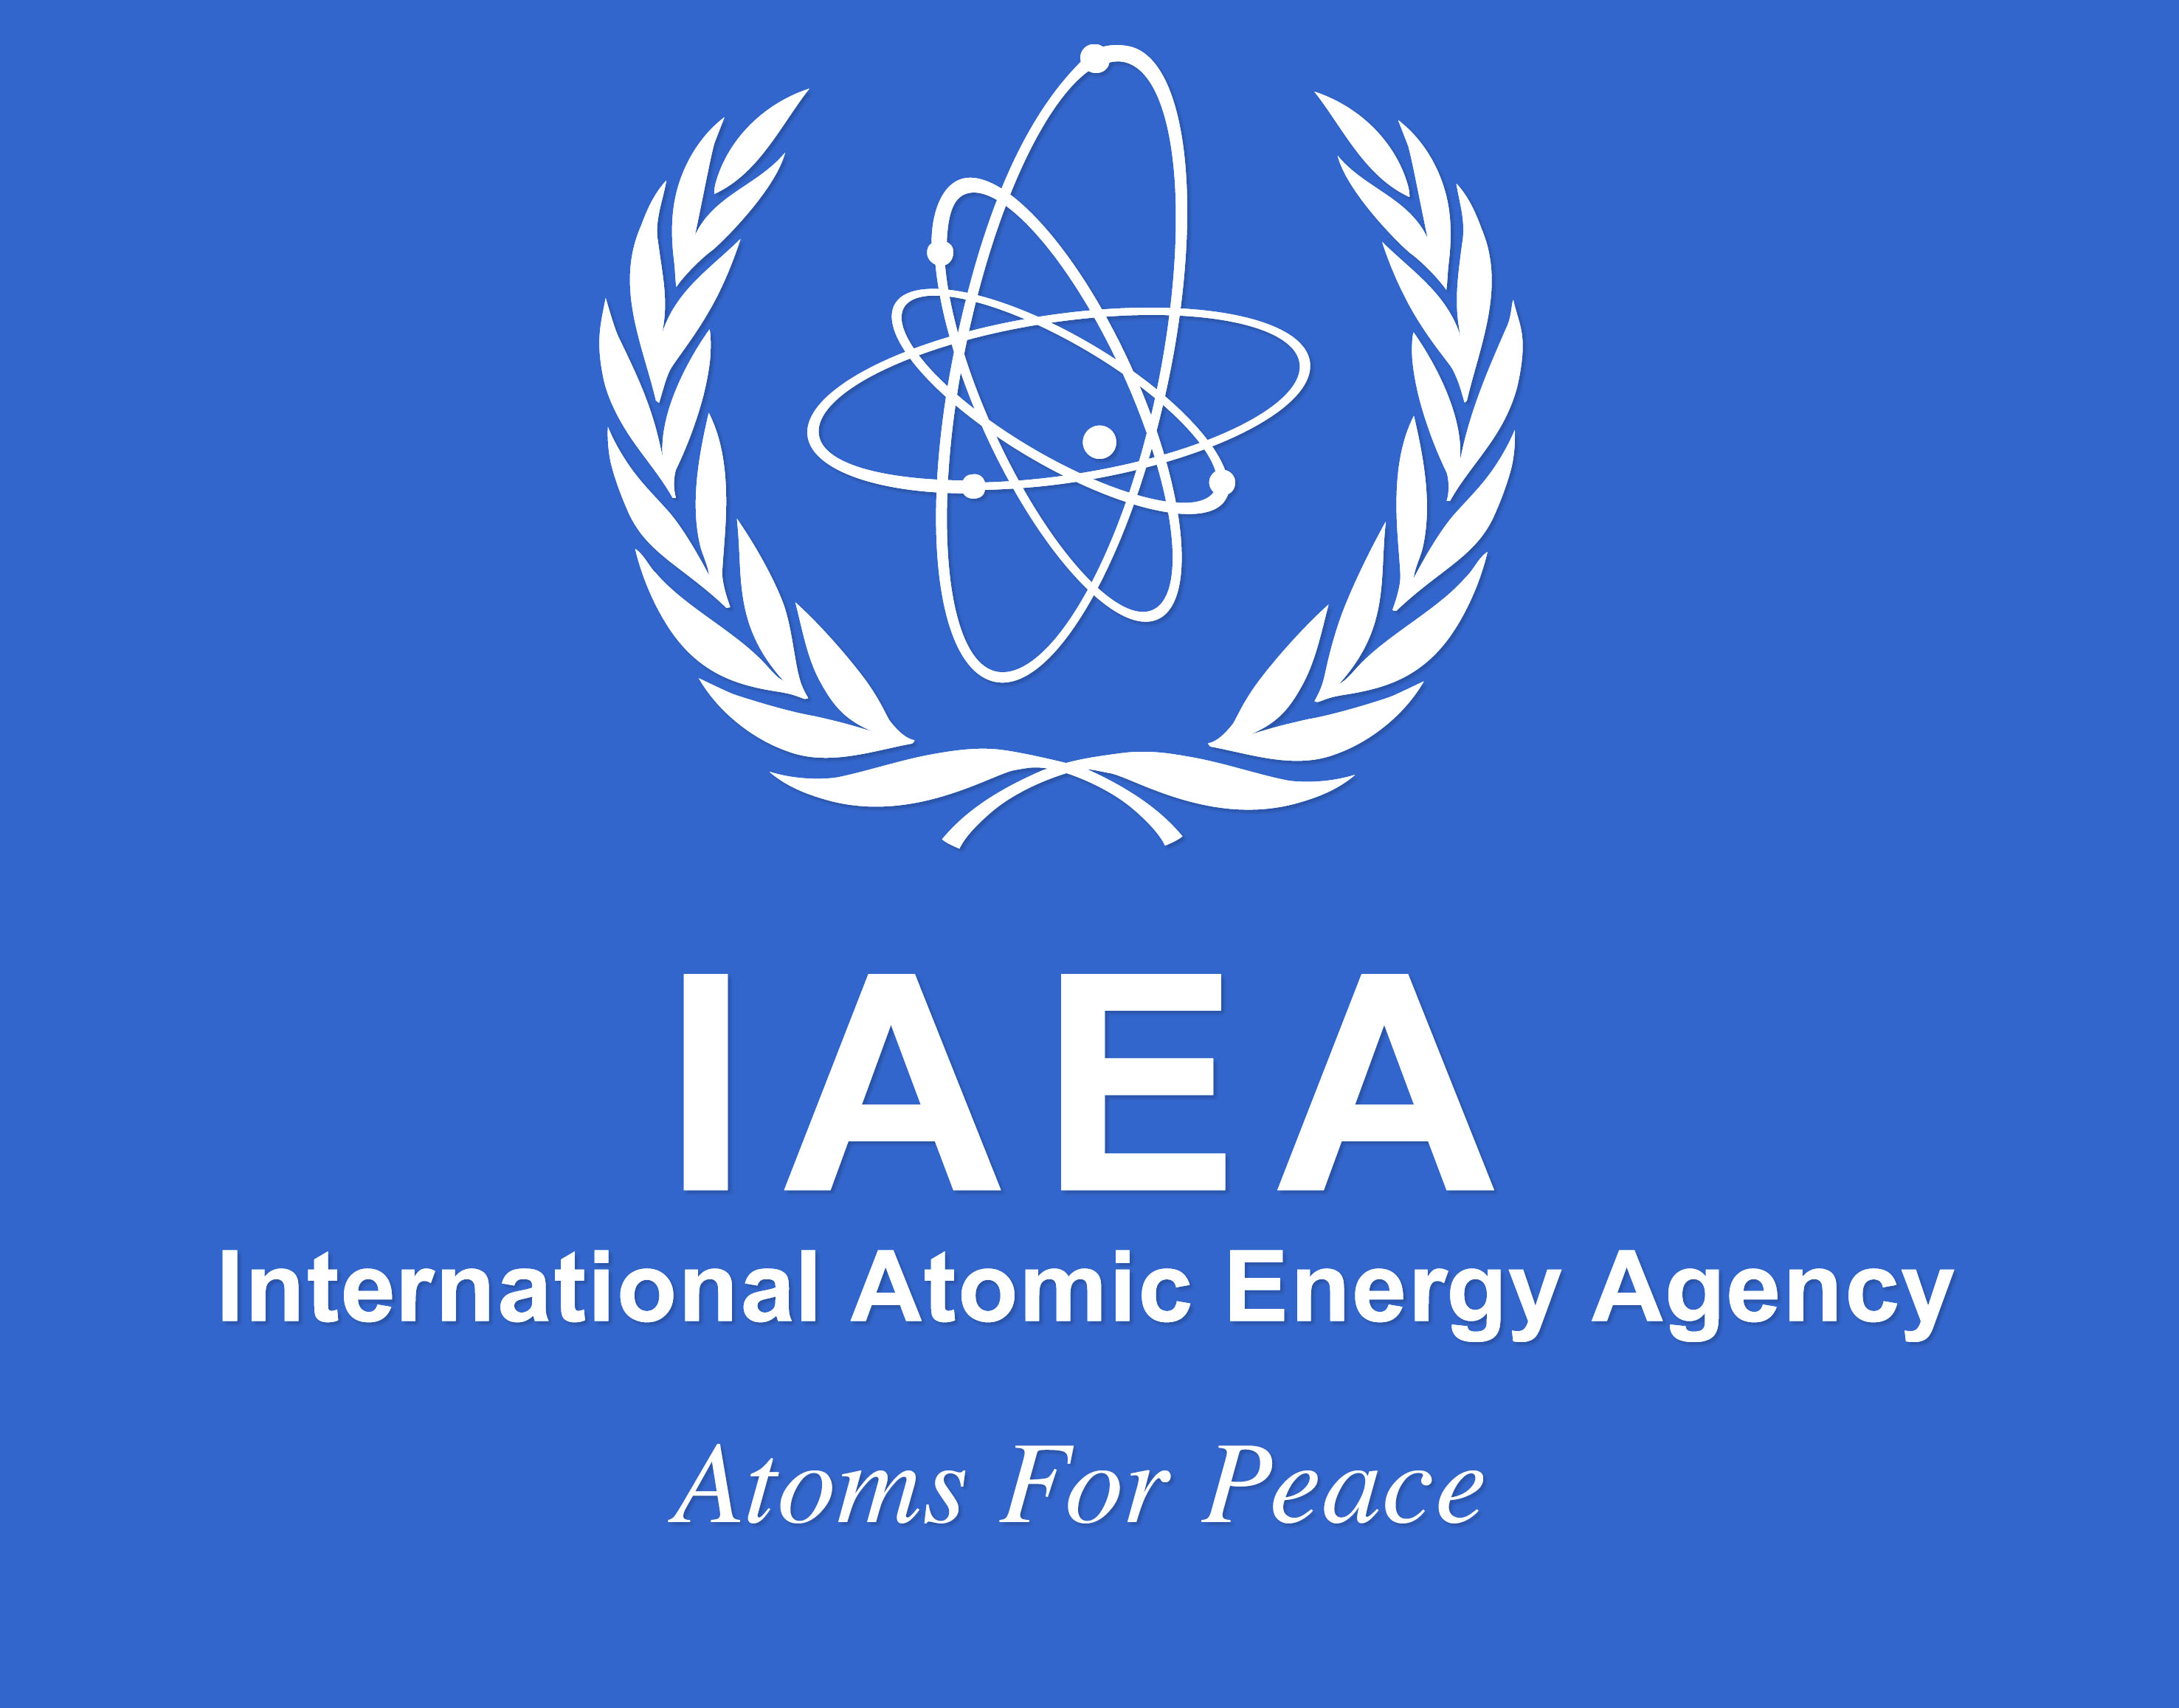 logo for International Atomic Energy Agency